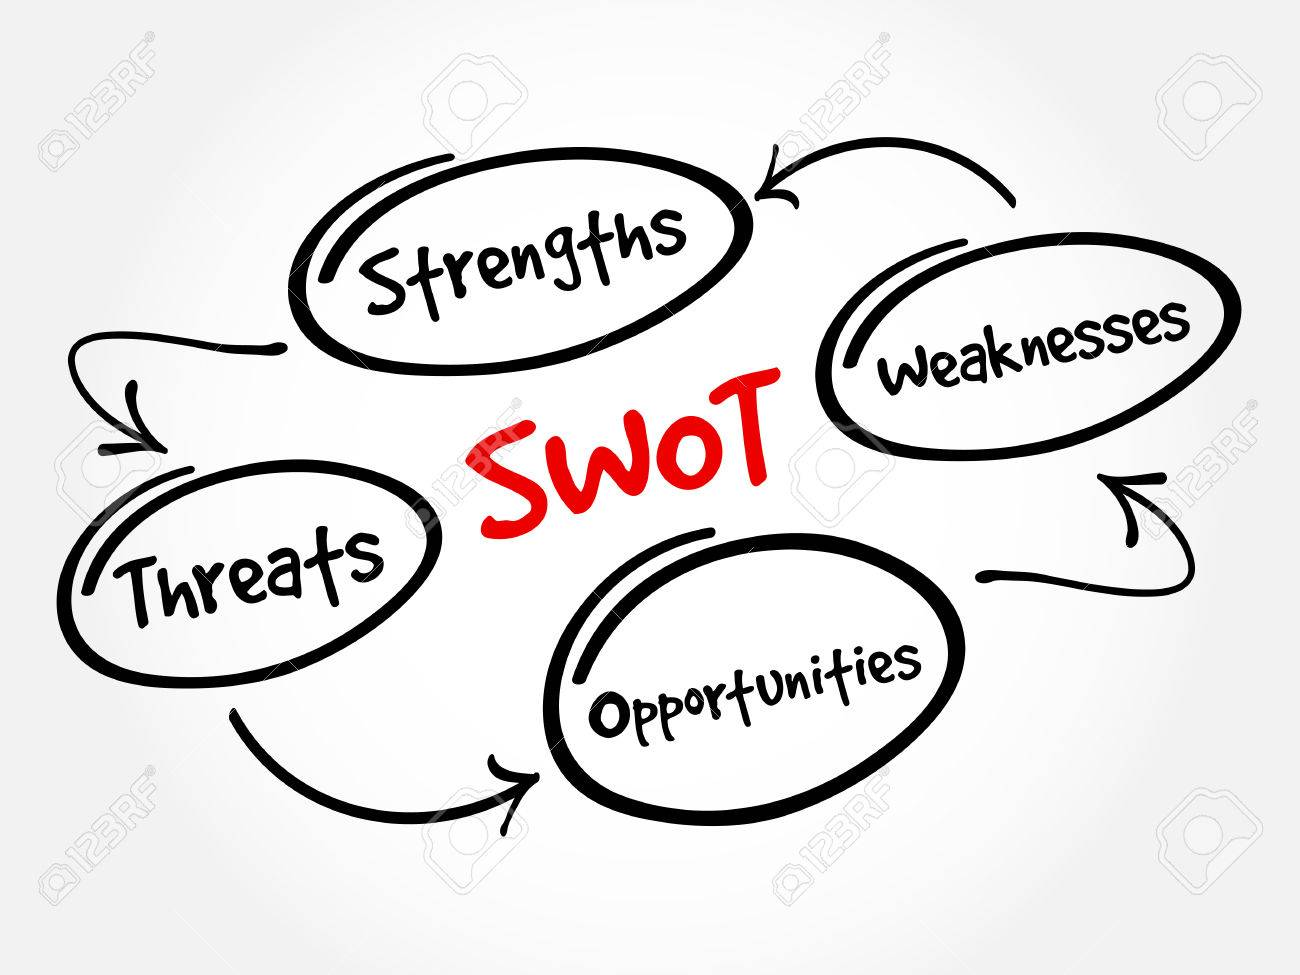 swot strengths weaknesses opportunities threats business swot strengths weaknesses opportunities threats business strategy mind map flowchart concept for presentations